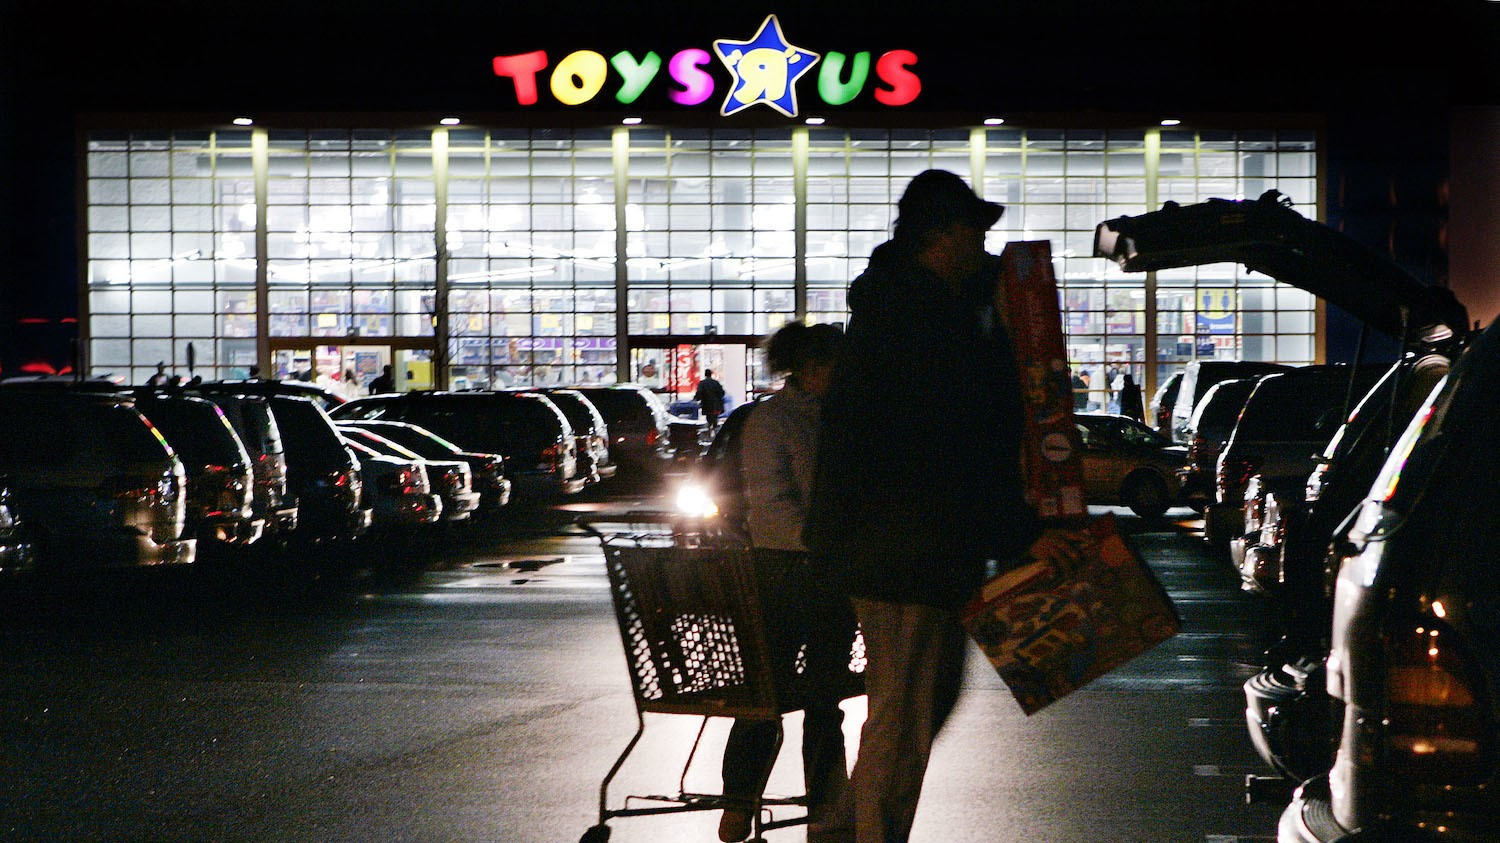 Toys R Us charged different prices for white and 'ethnic' dolls, but says it was an accident